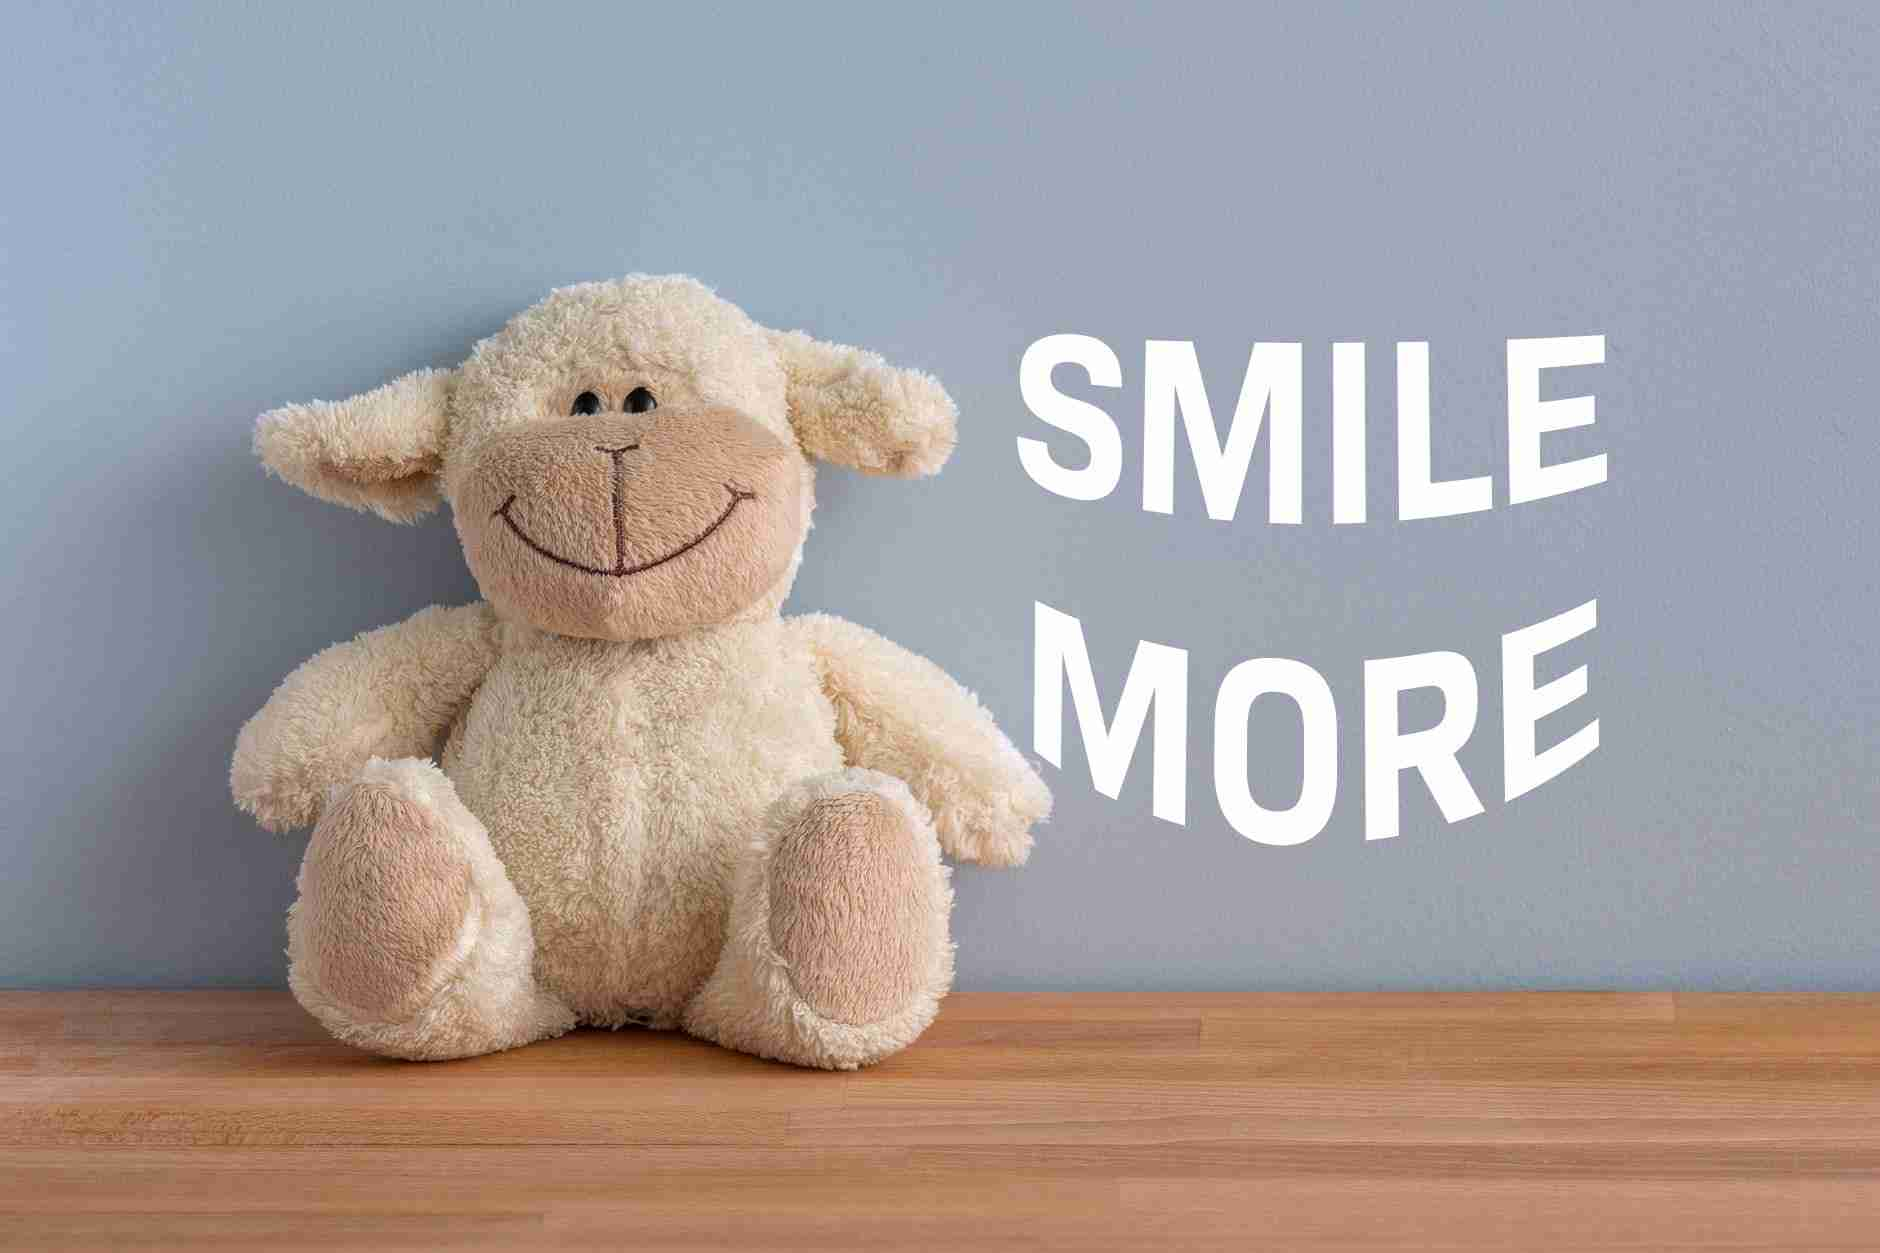 Smile More For Your Health